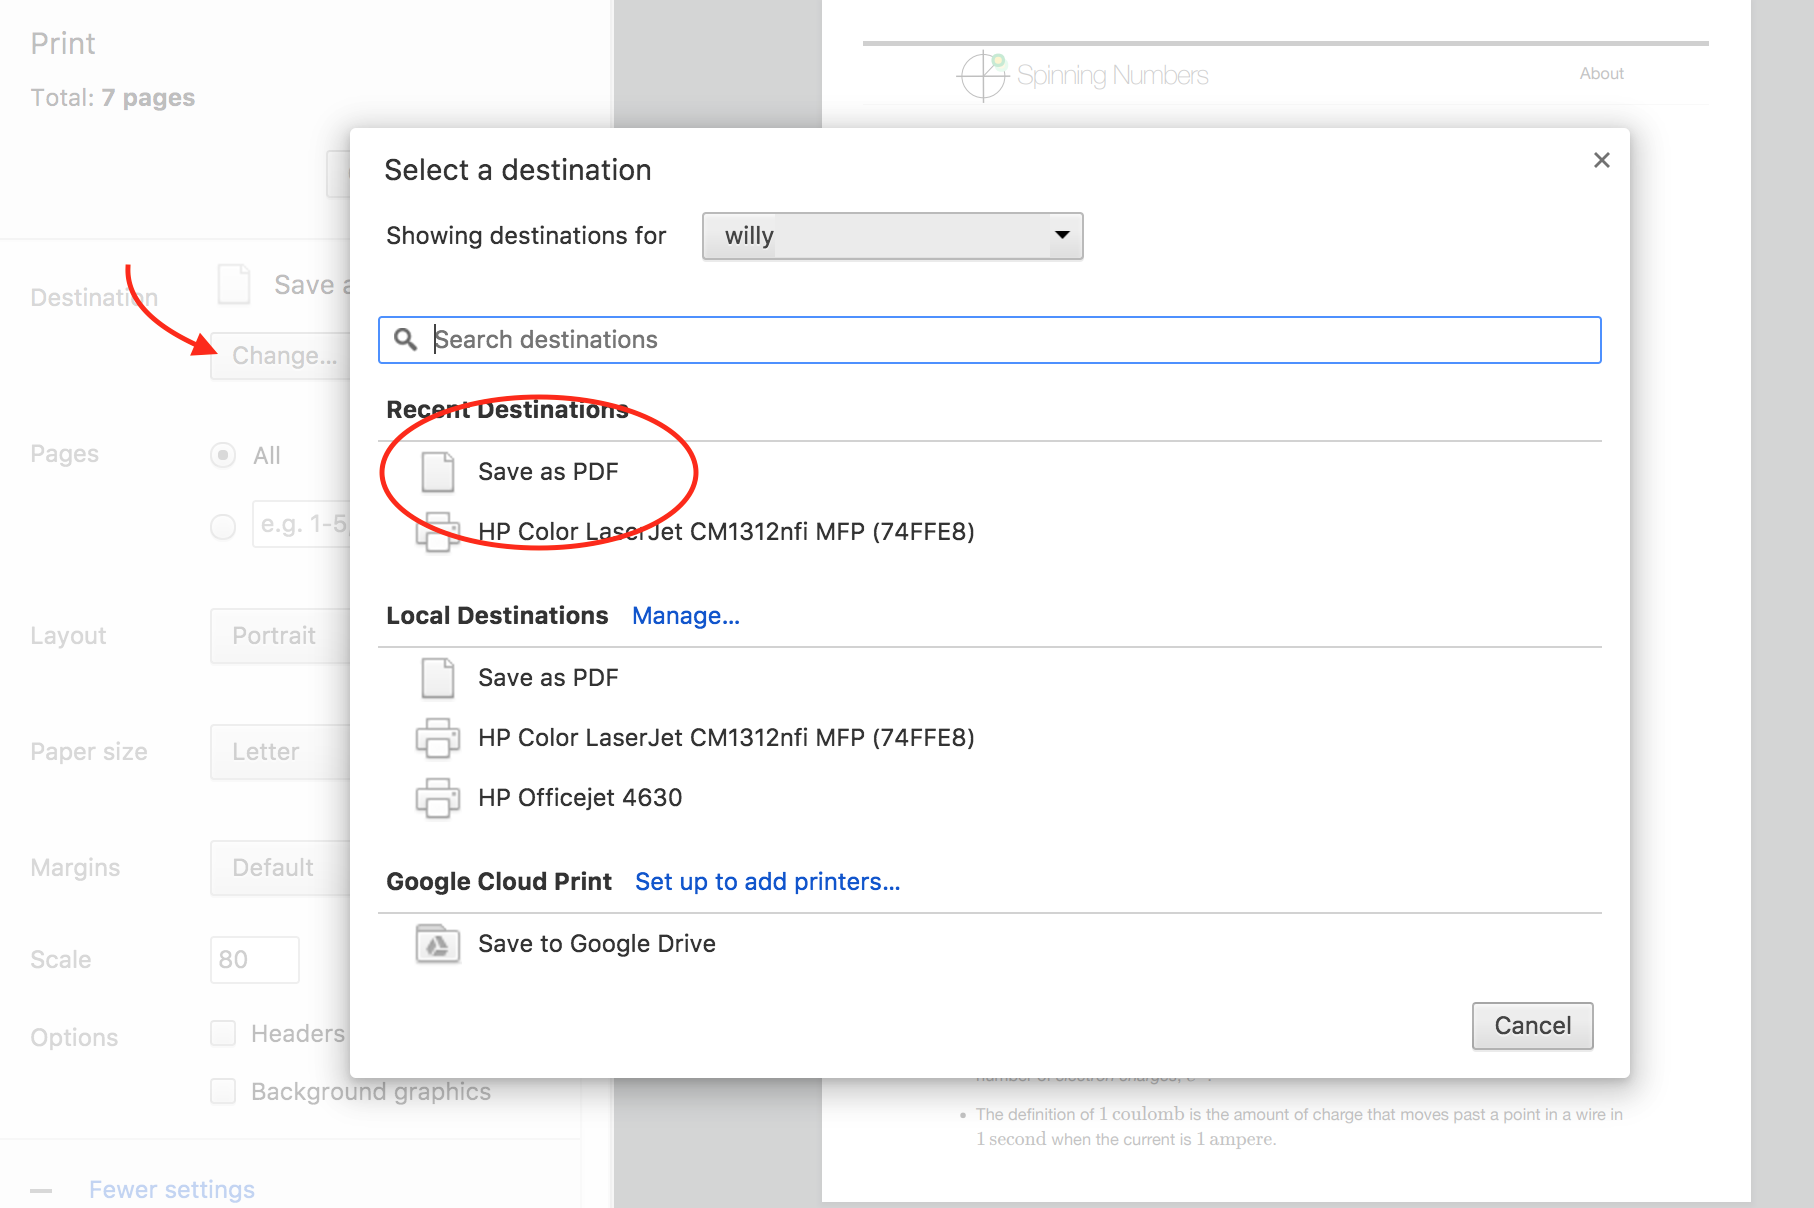 If You Want A Pdf File Change The Print Destination To Continue On With Save And Pick Name For Your